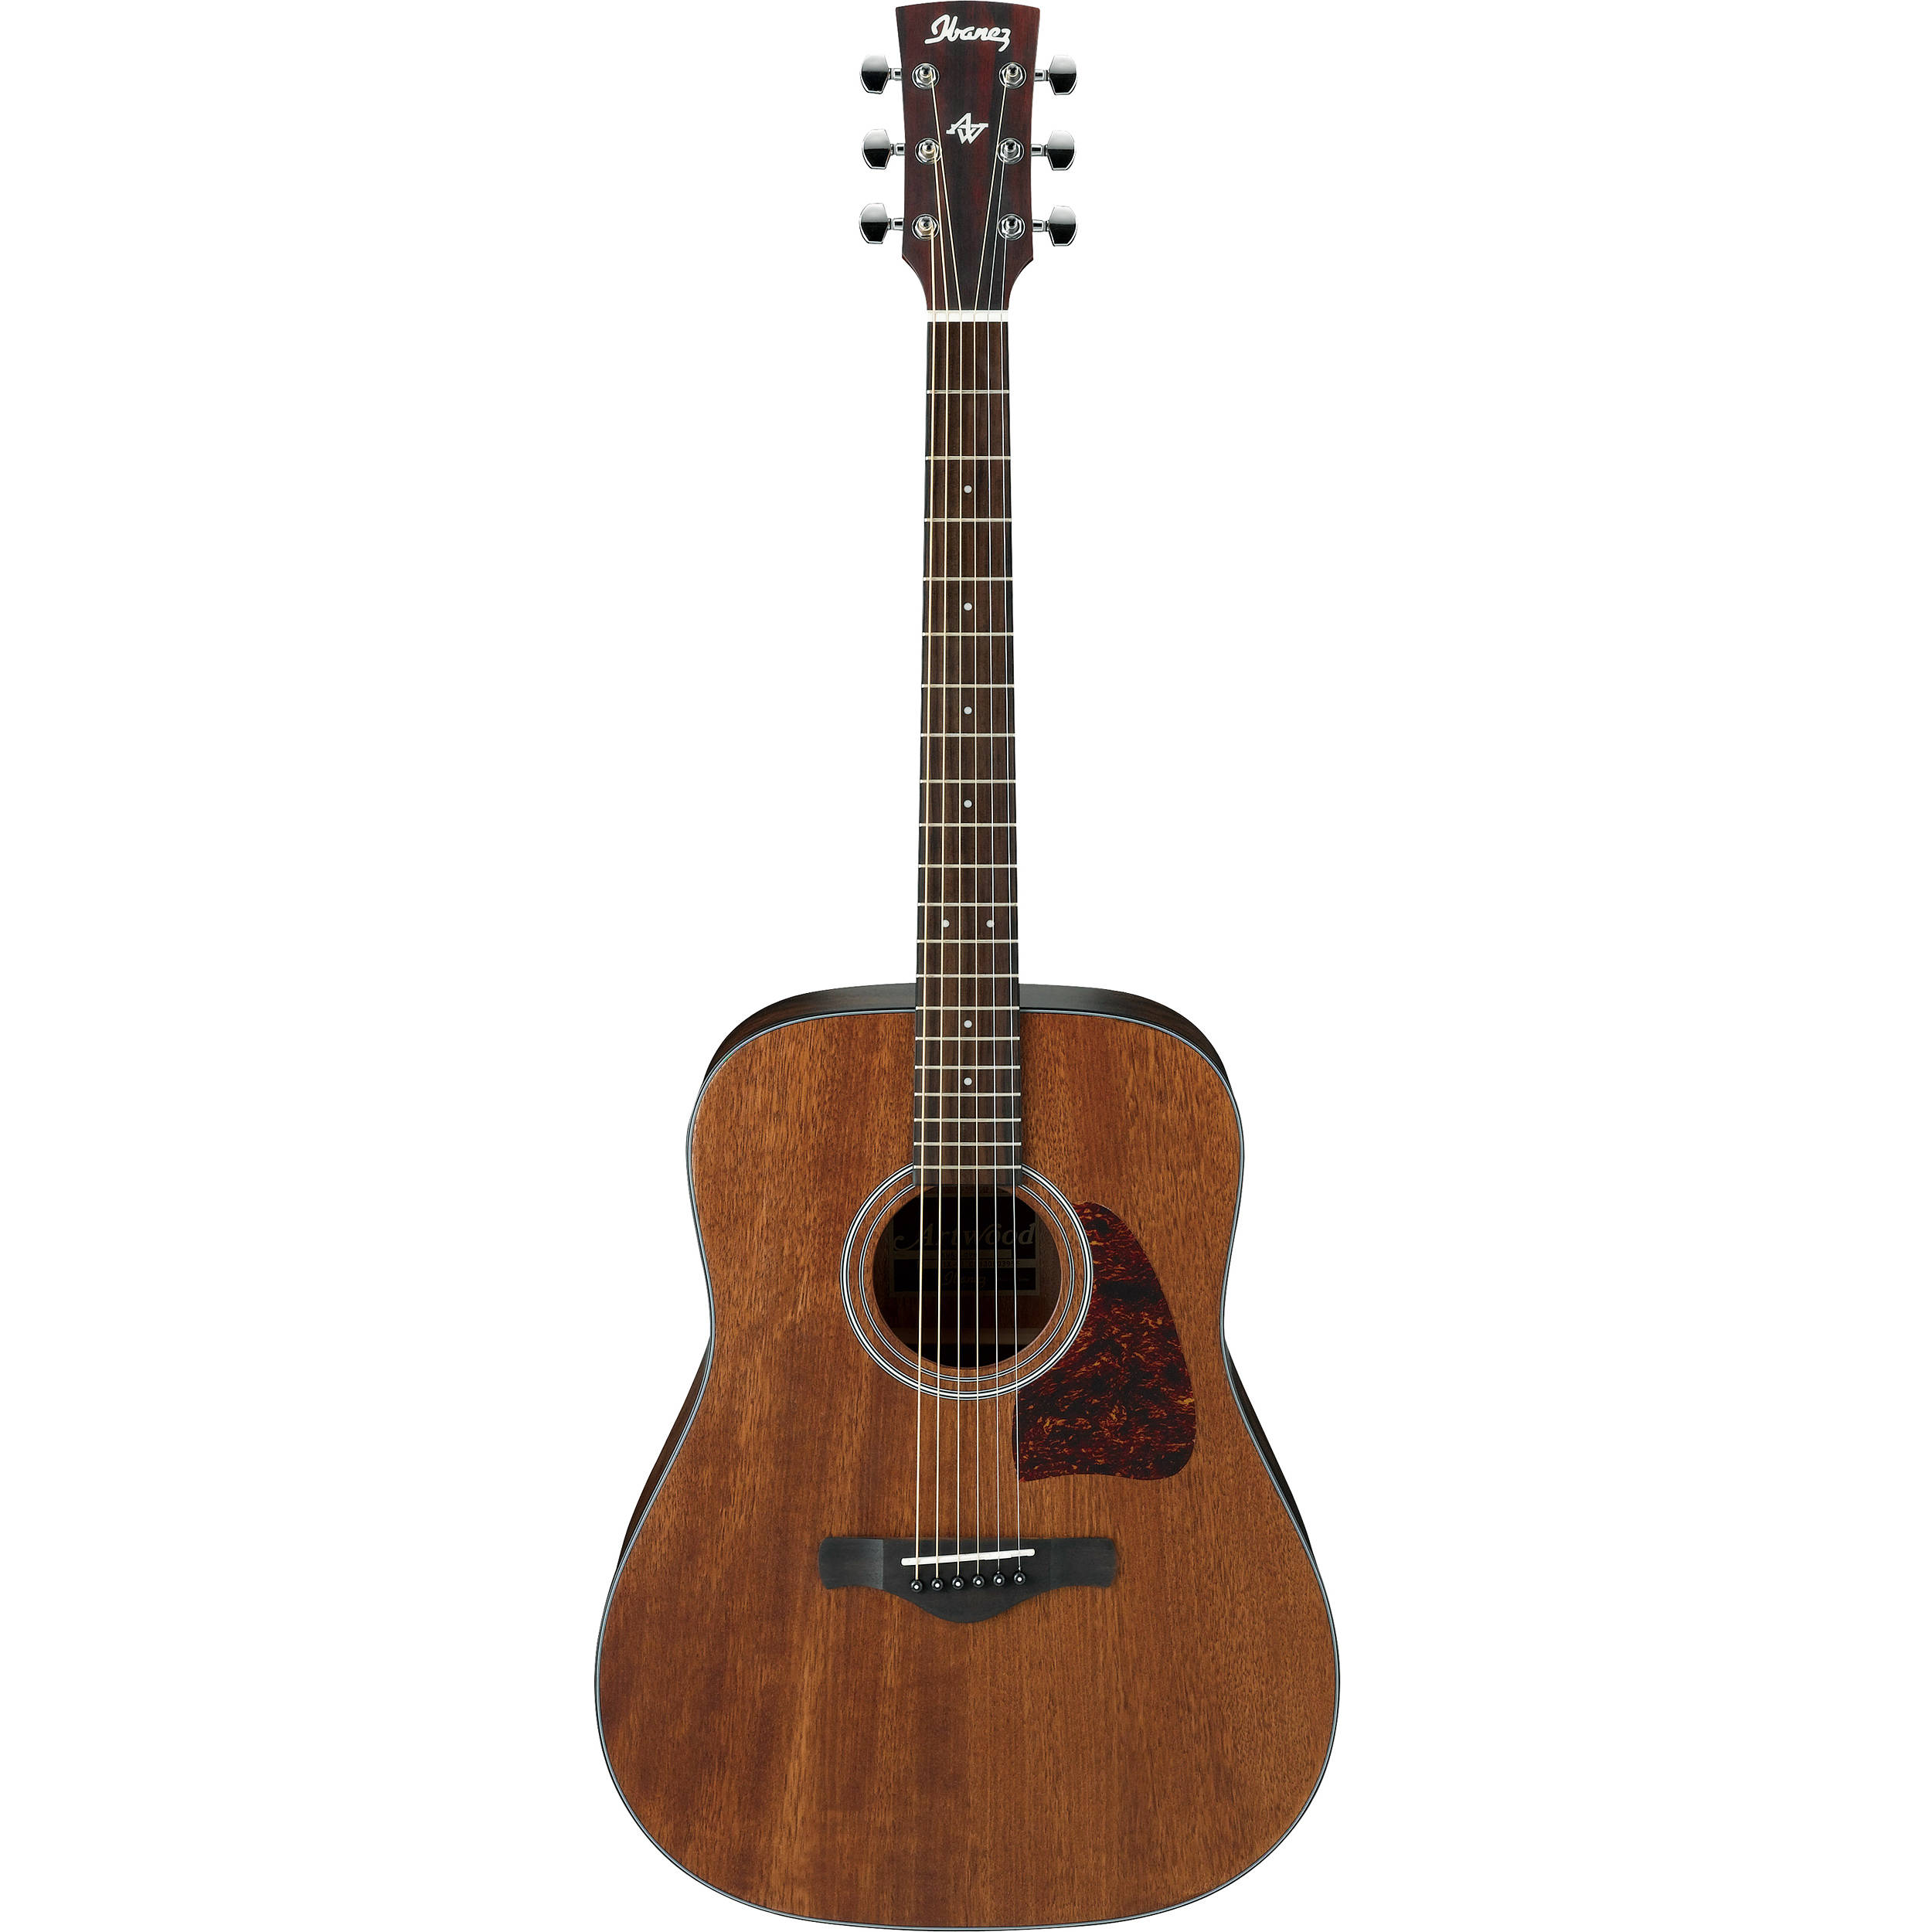 ibanez aw54 artwood series acoustic guitar aw54opn b h photo. Black Bedroom Furniture Sets. Home Design Ideas